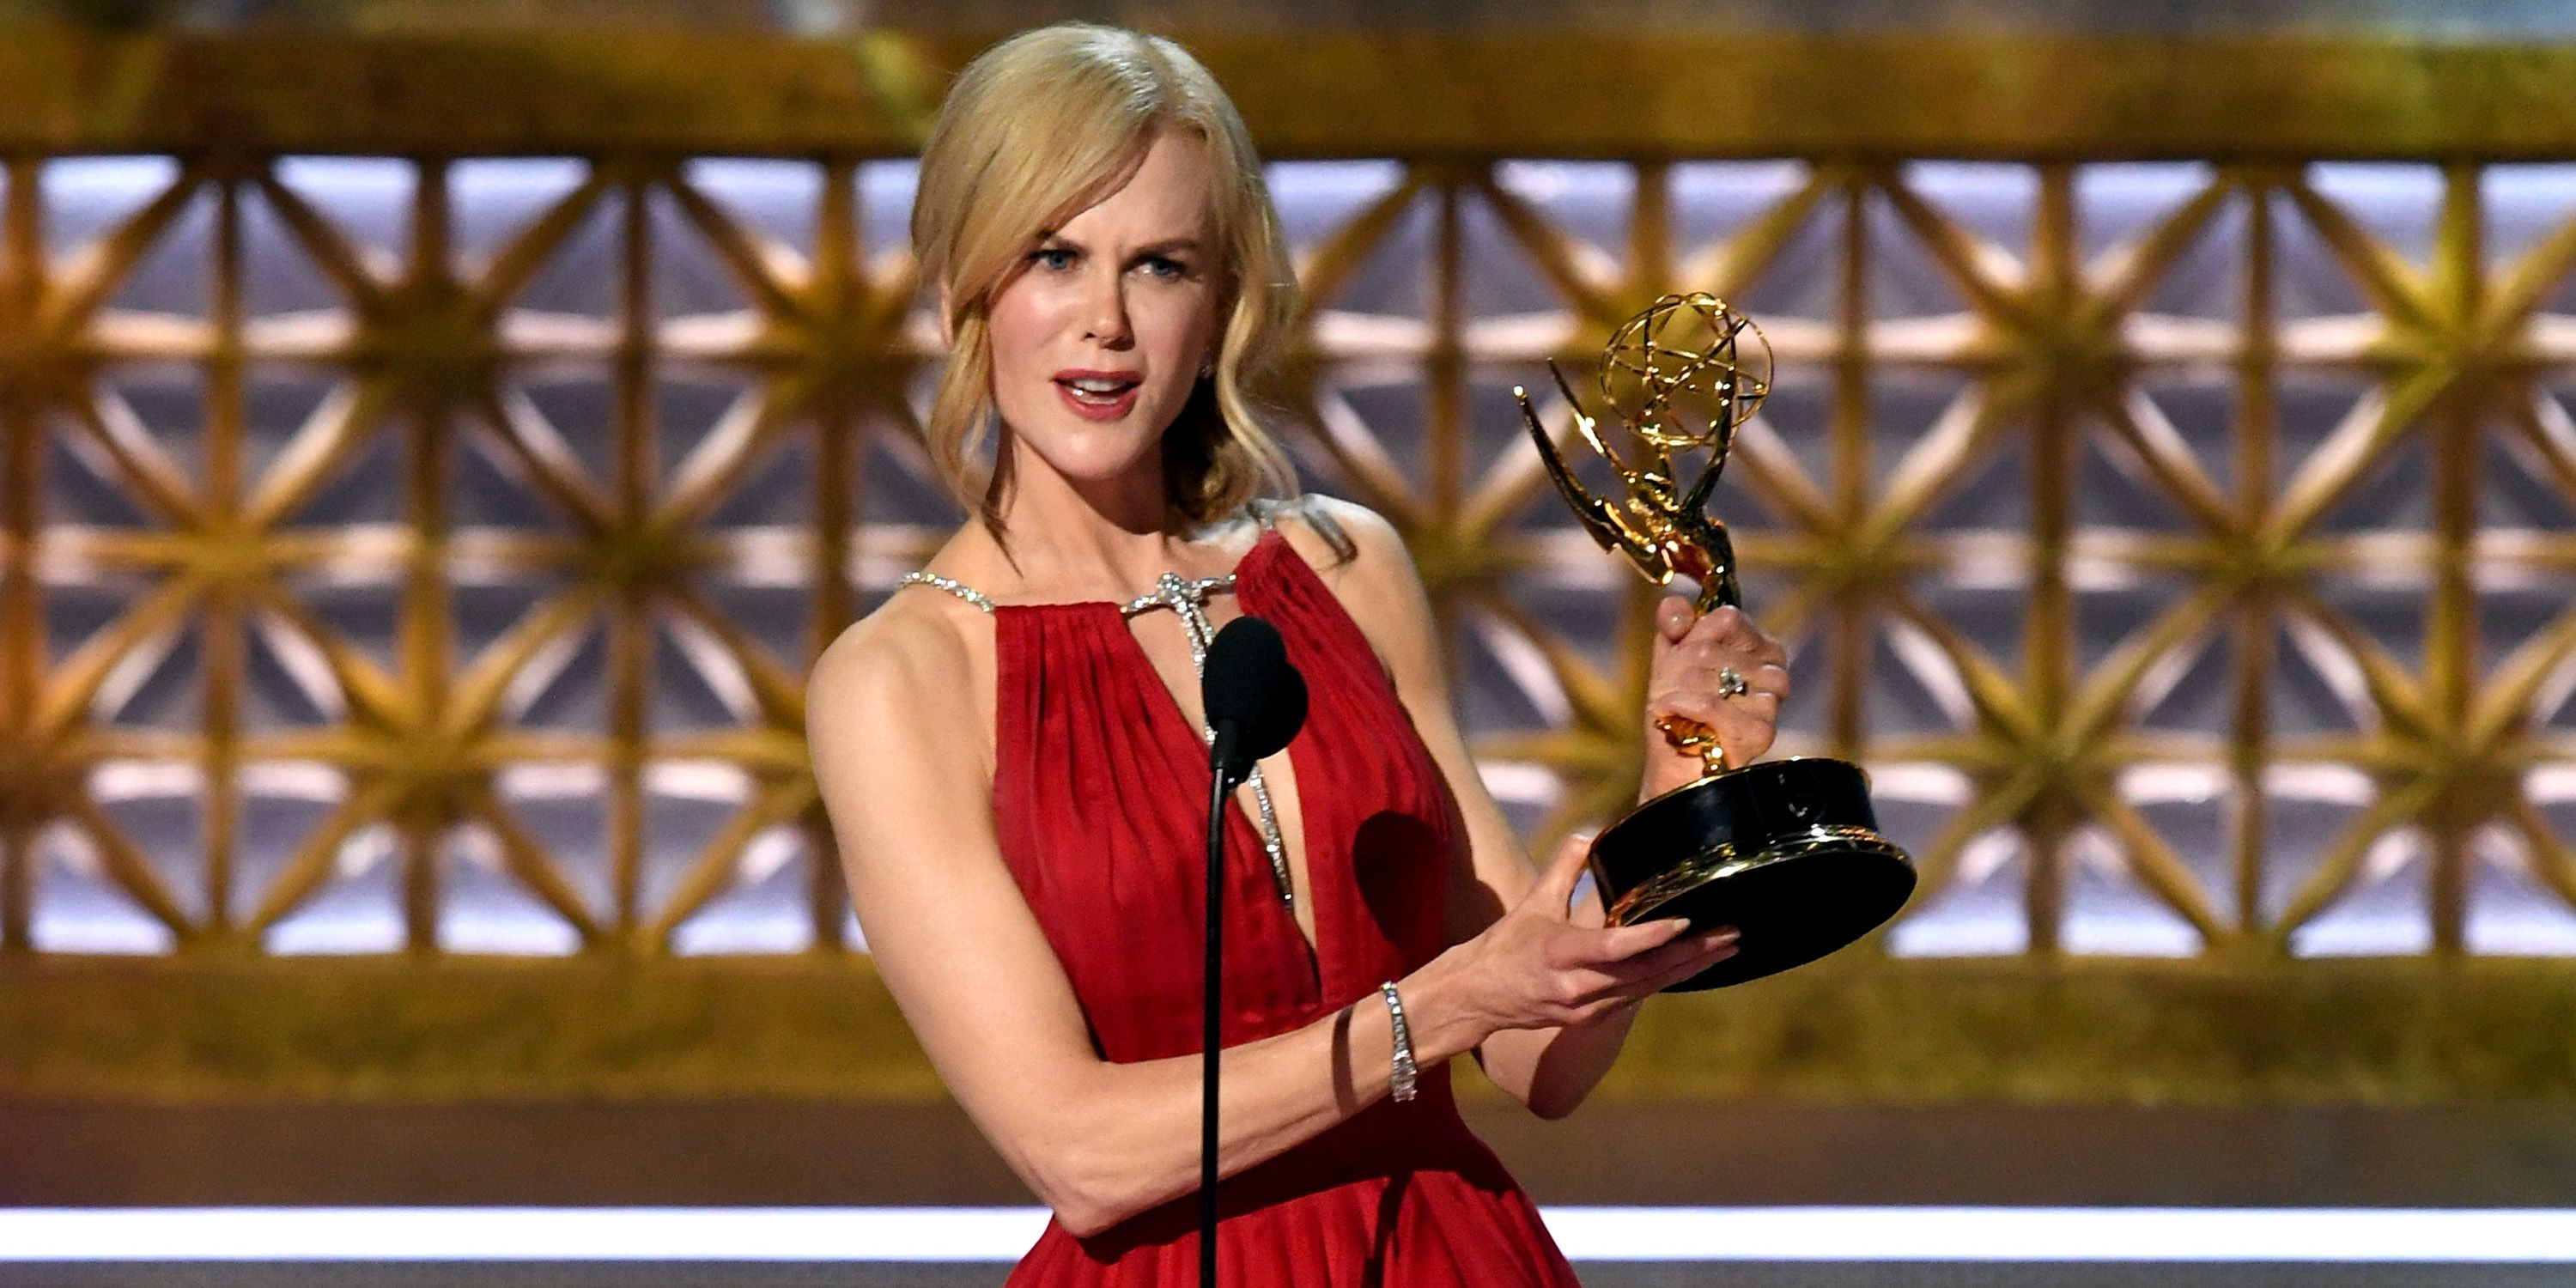 Nicole Kidman Made a Powerful Statement About Domestic Abuse At The Emmys